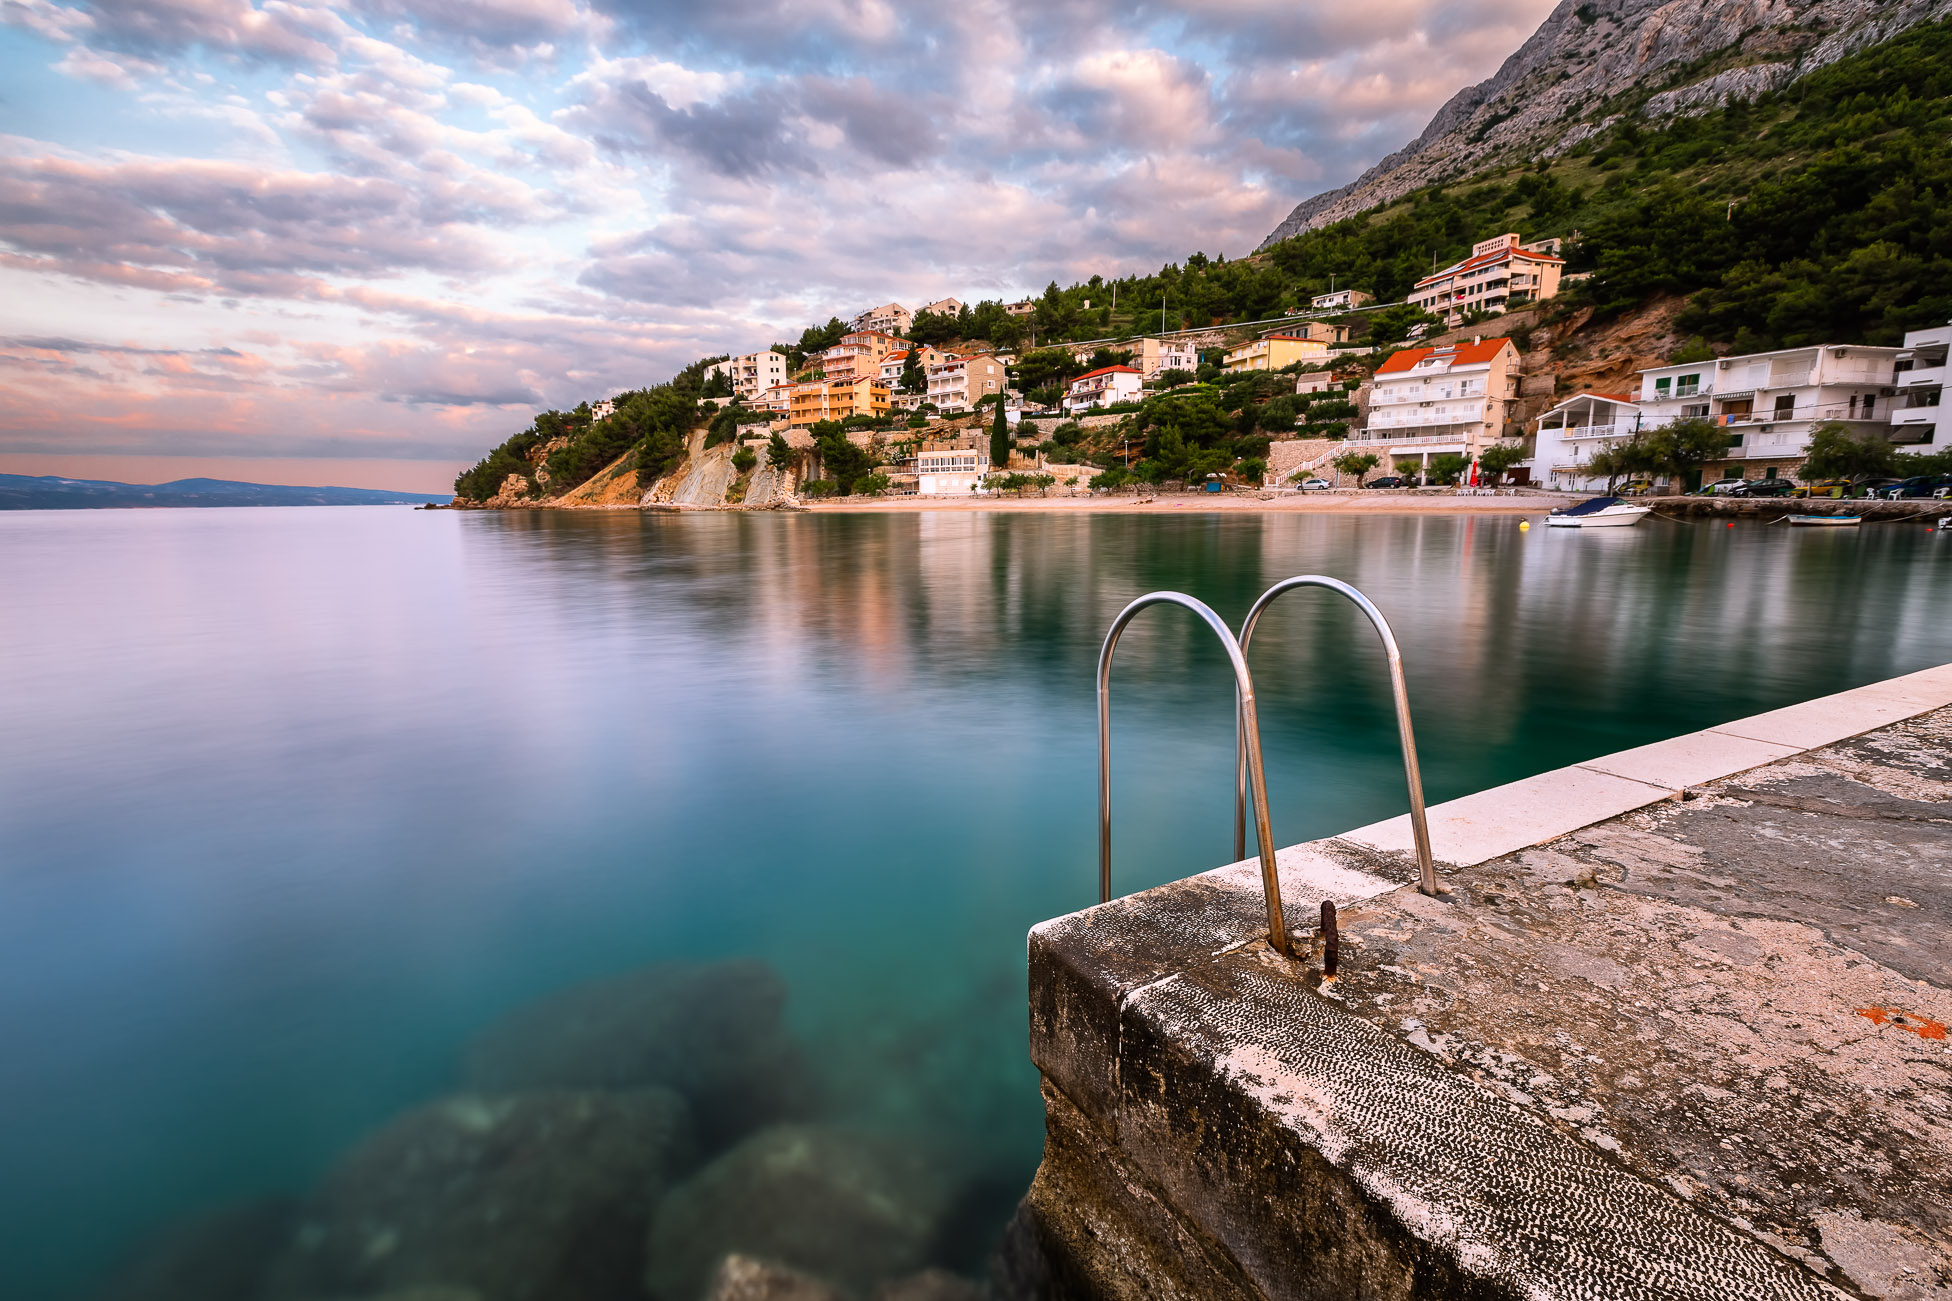 Stone Jetty in Small Village near Omis at Dawn, Dalmatia, Croatia